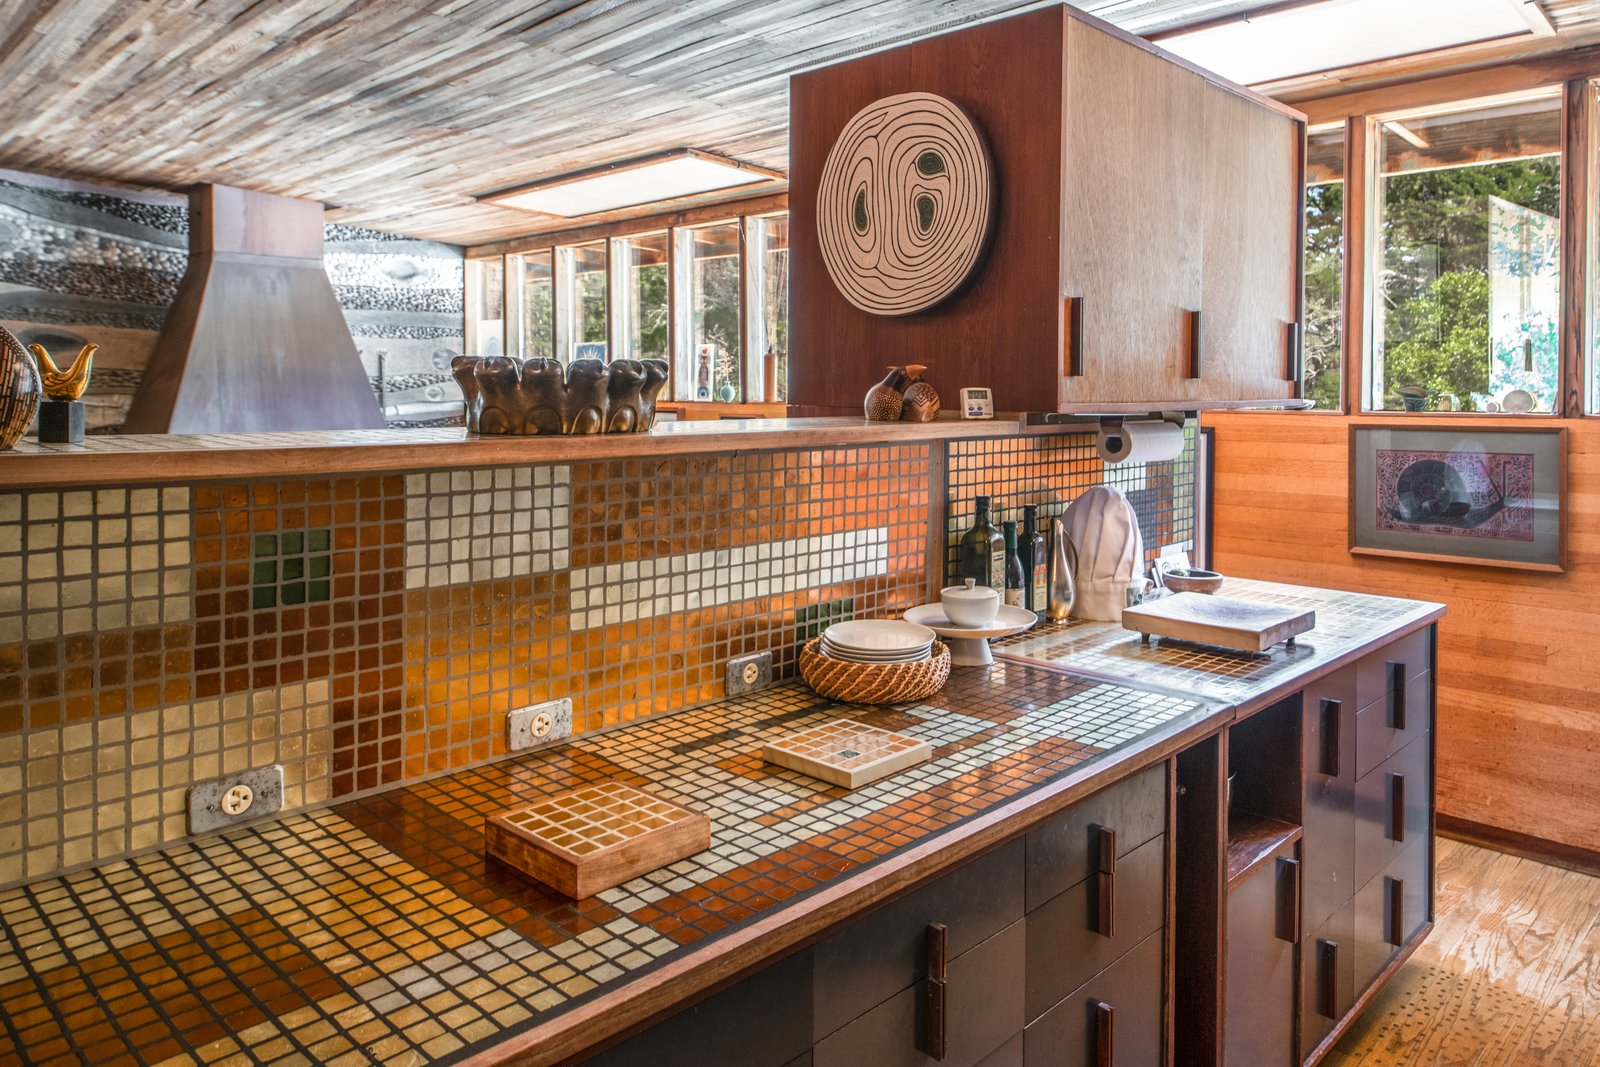 Kitchen, Tile Counter, Cooktops, Wall Oven, Medium Hardwood Floor, Wood Cabinet, Glass Tile Backsplashe, and Refrigerator The kitchen features a 24-karat gold cooktop and rose gold tile.  Photo 7 of 10 in Renowned Artist Emile Norman's Sensational Big Sur Home Lists for $2M